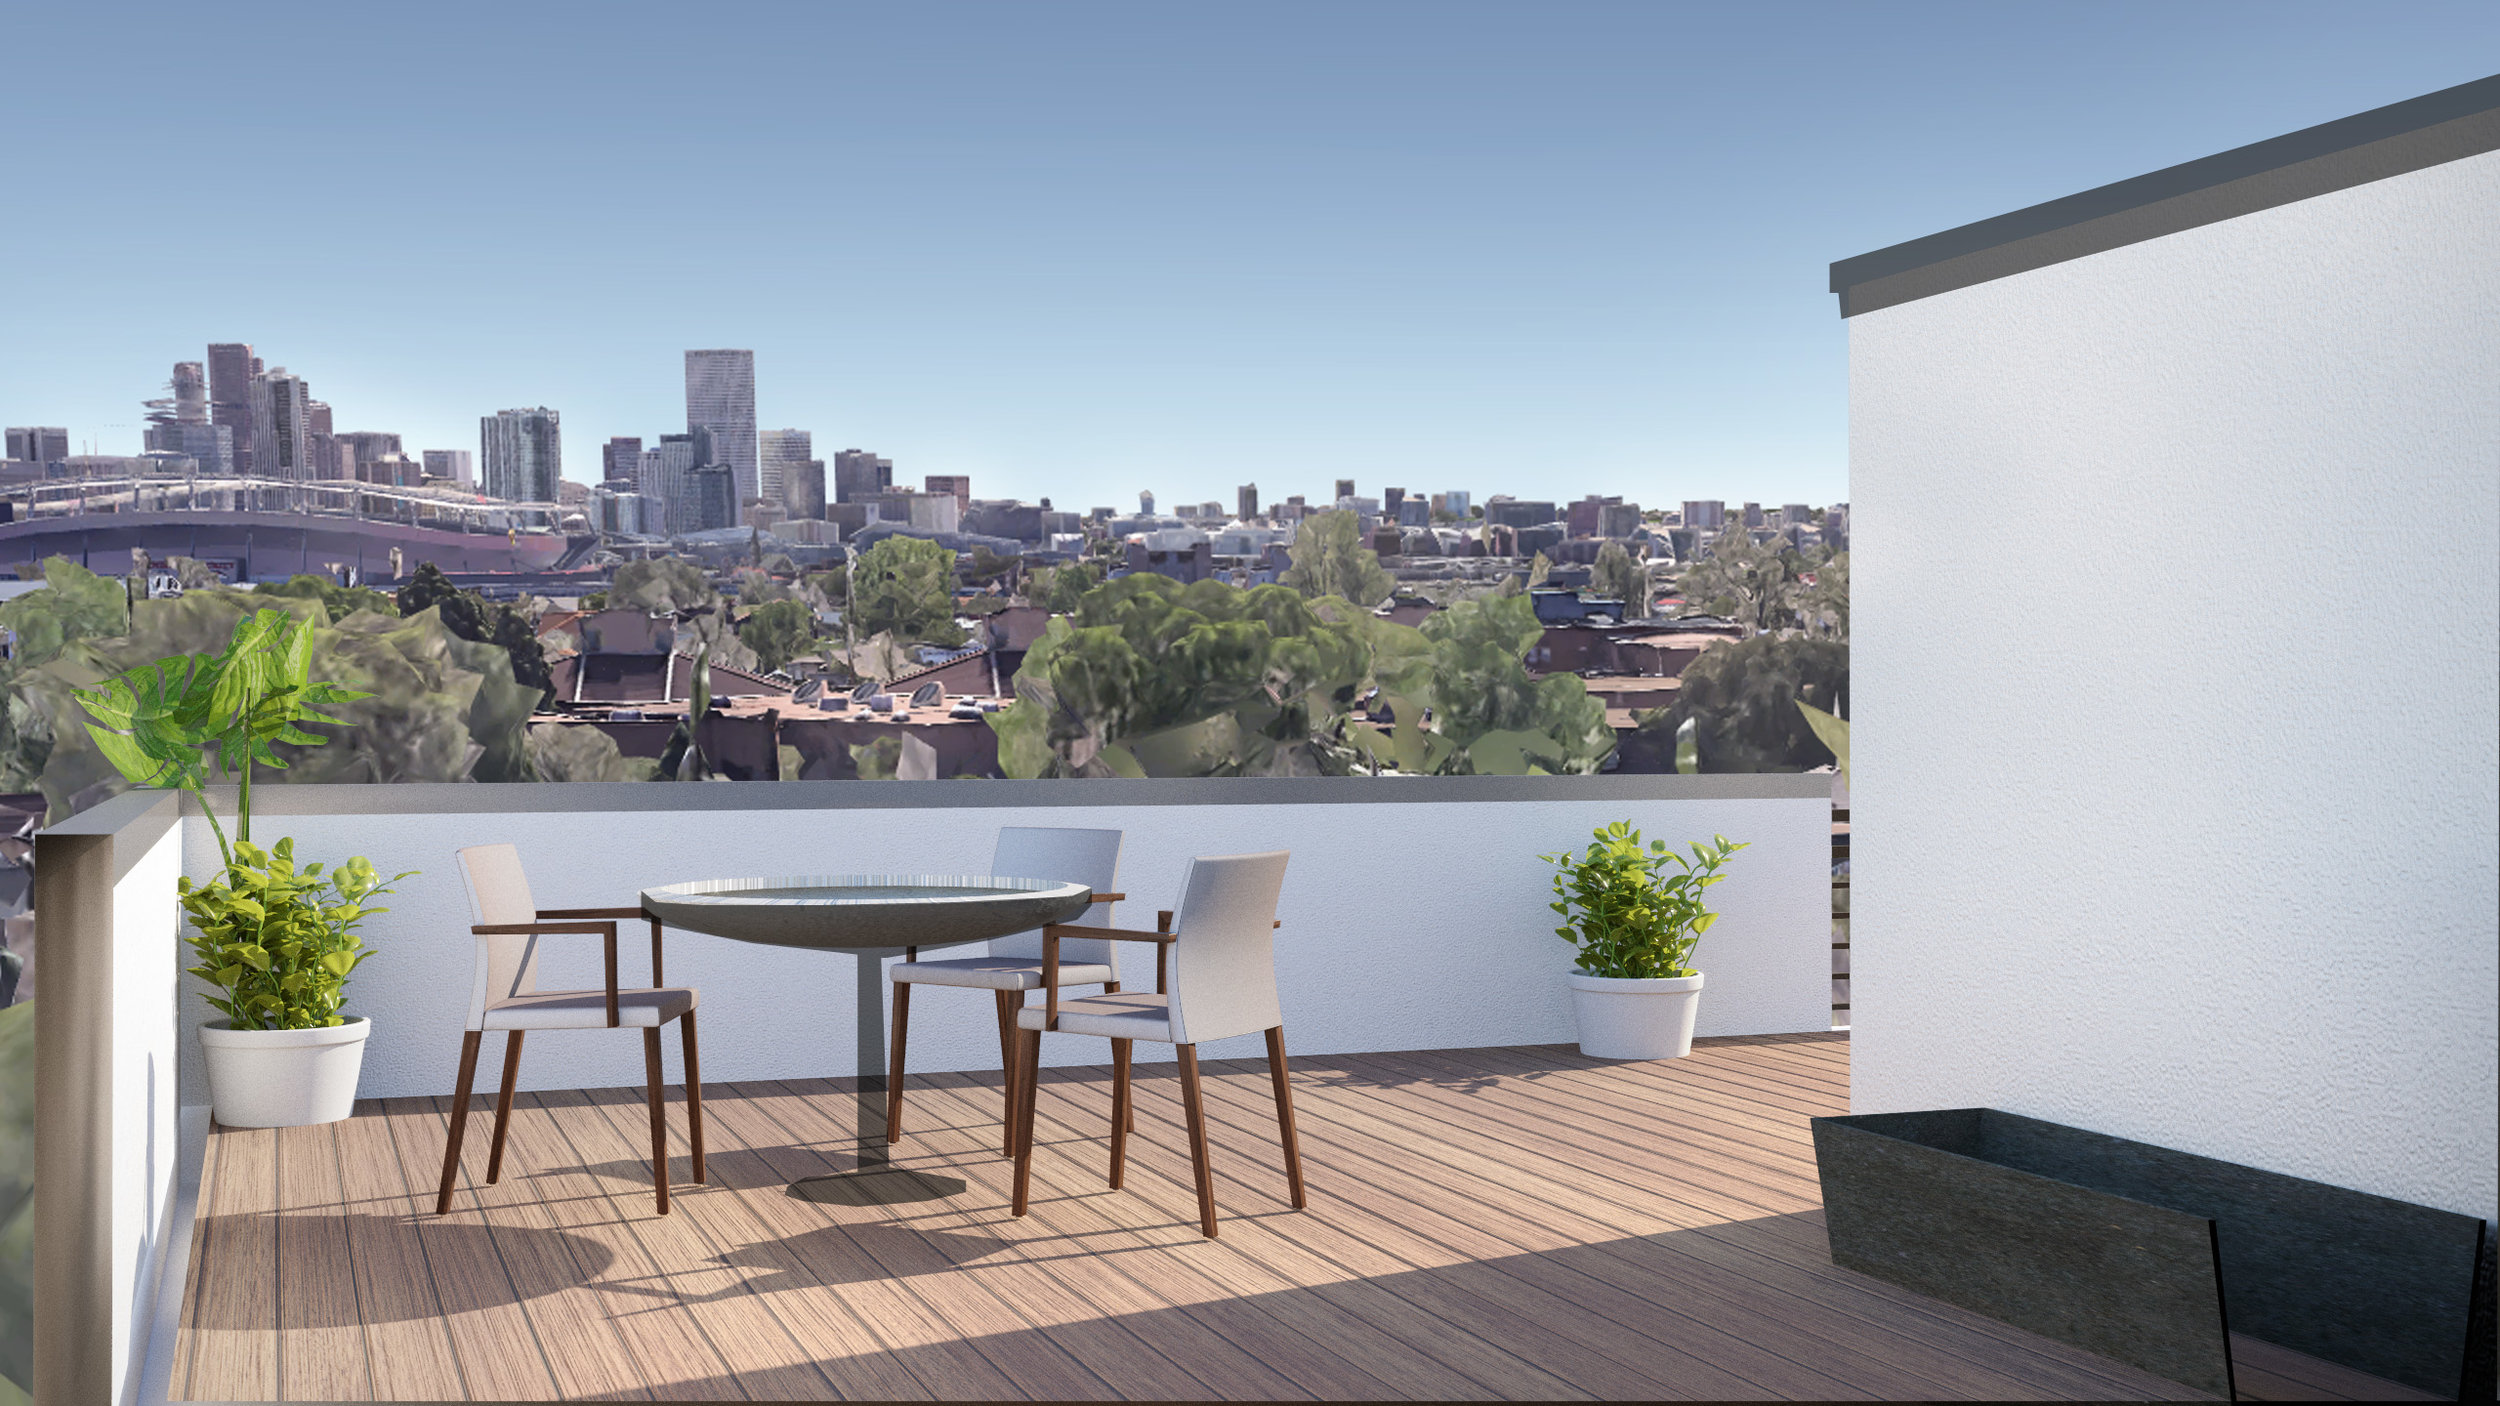 King- Rooftop Rendering #1.jpg